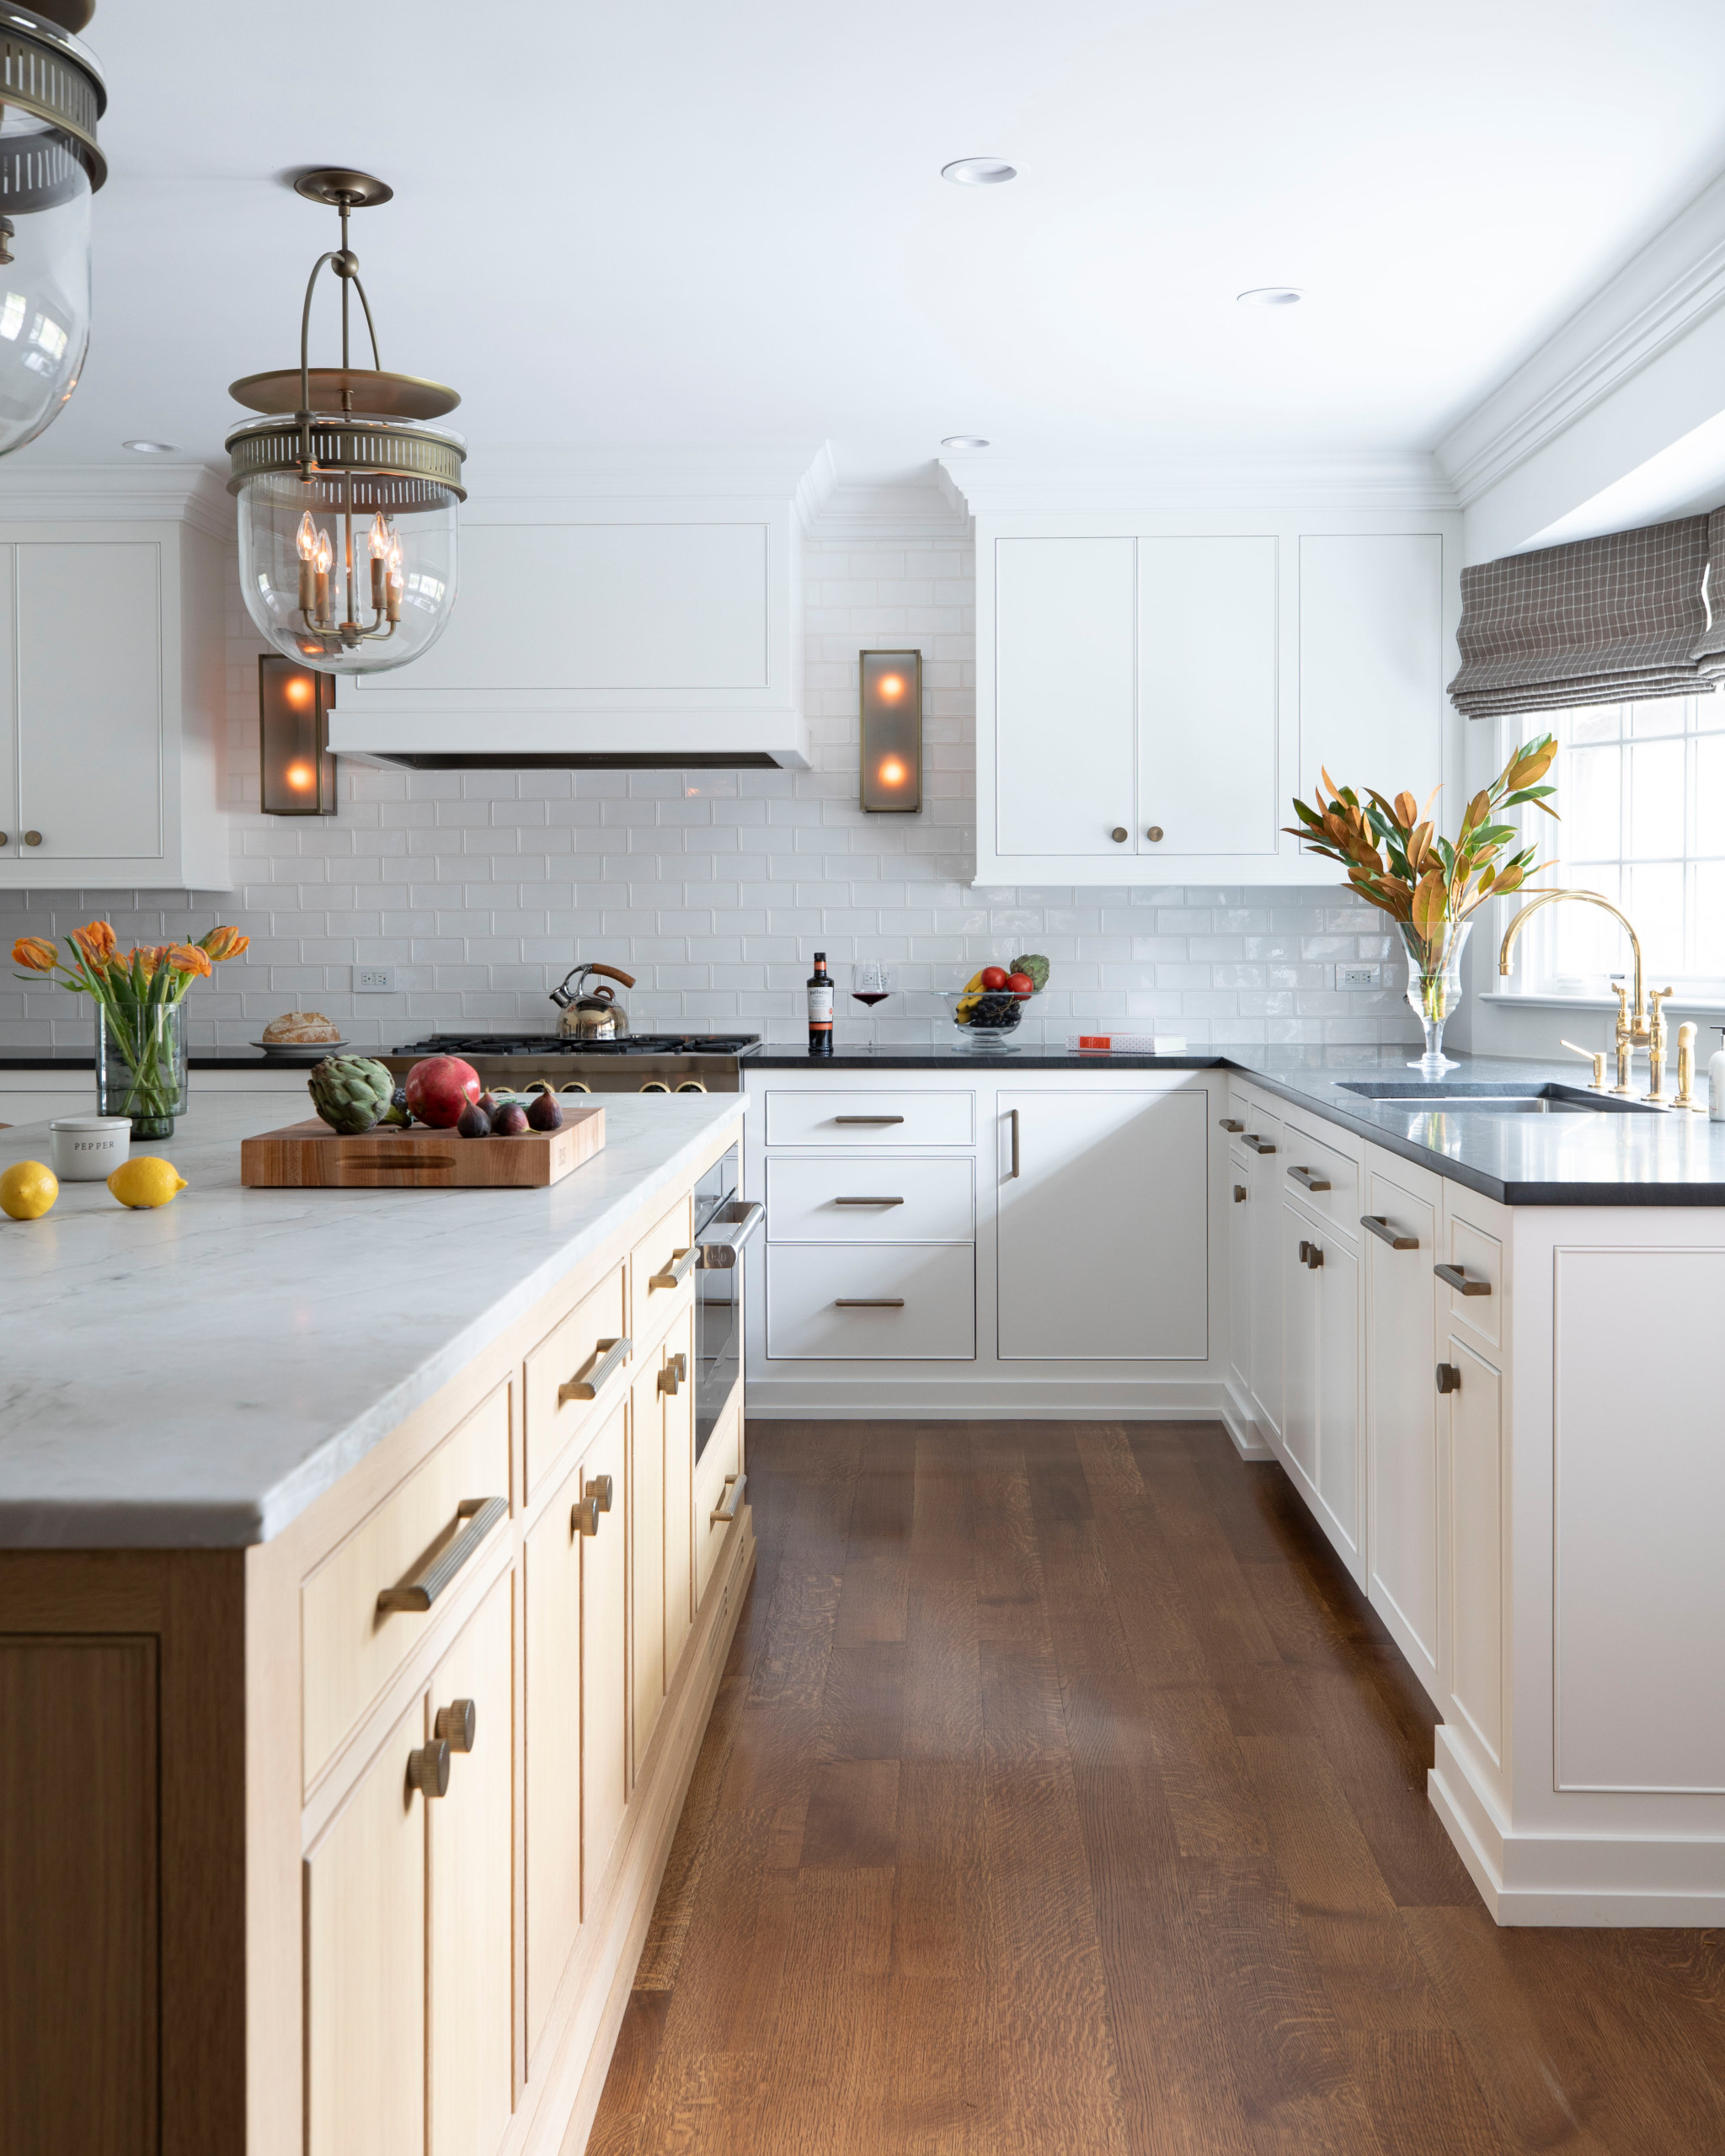 75 Beautiful White Kitchen With Black Countertops Pictures Ideas June 2021 Houzz